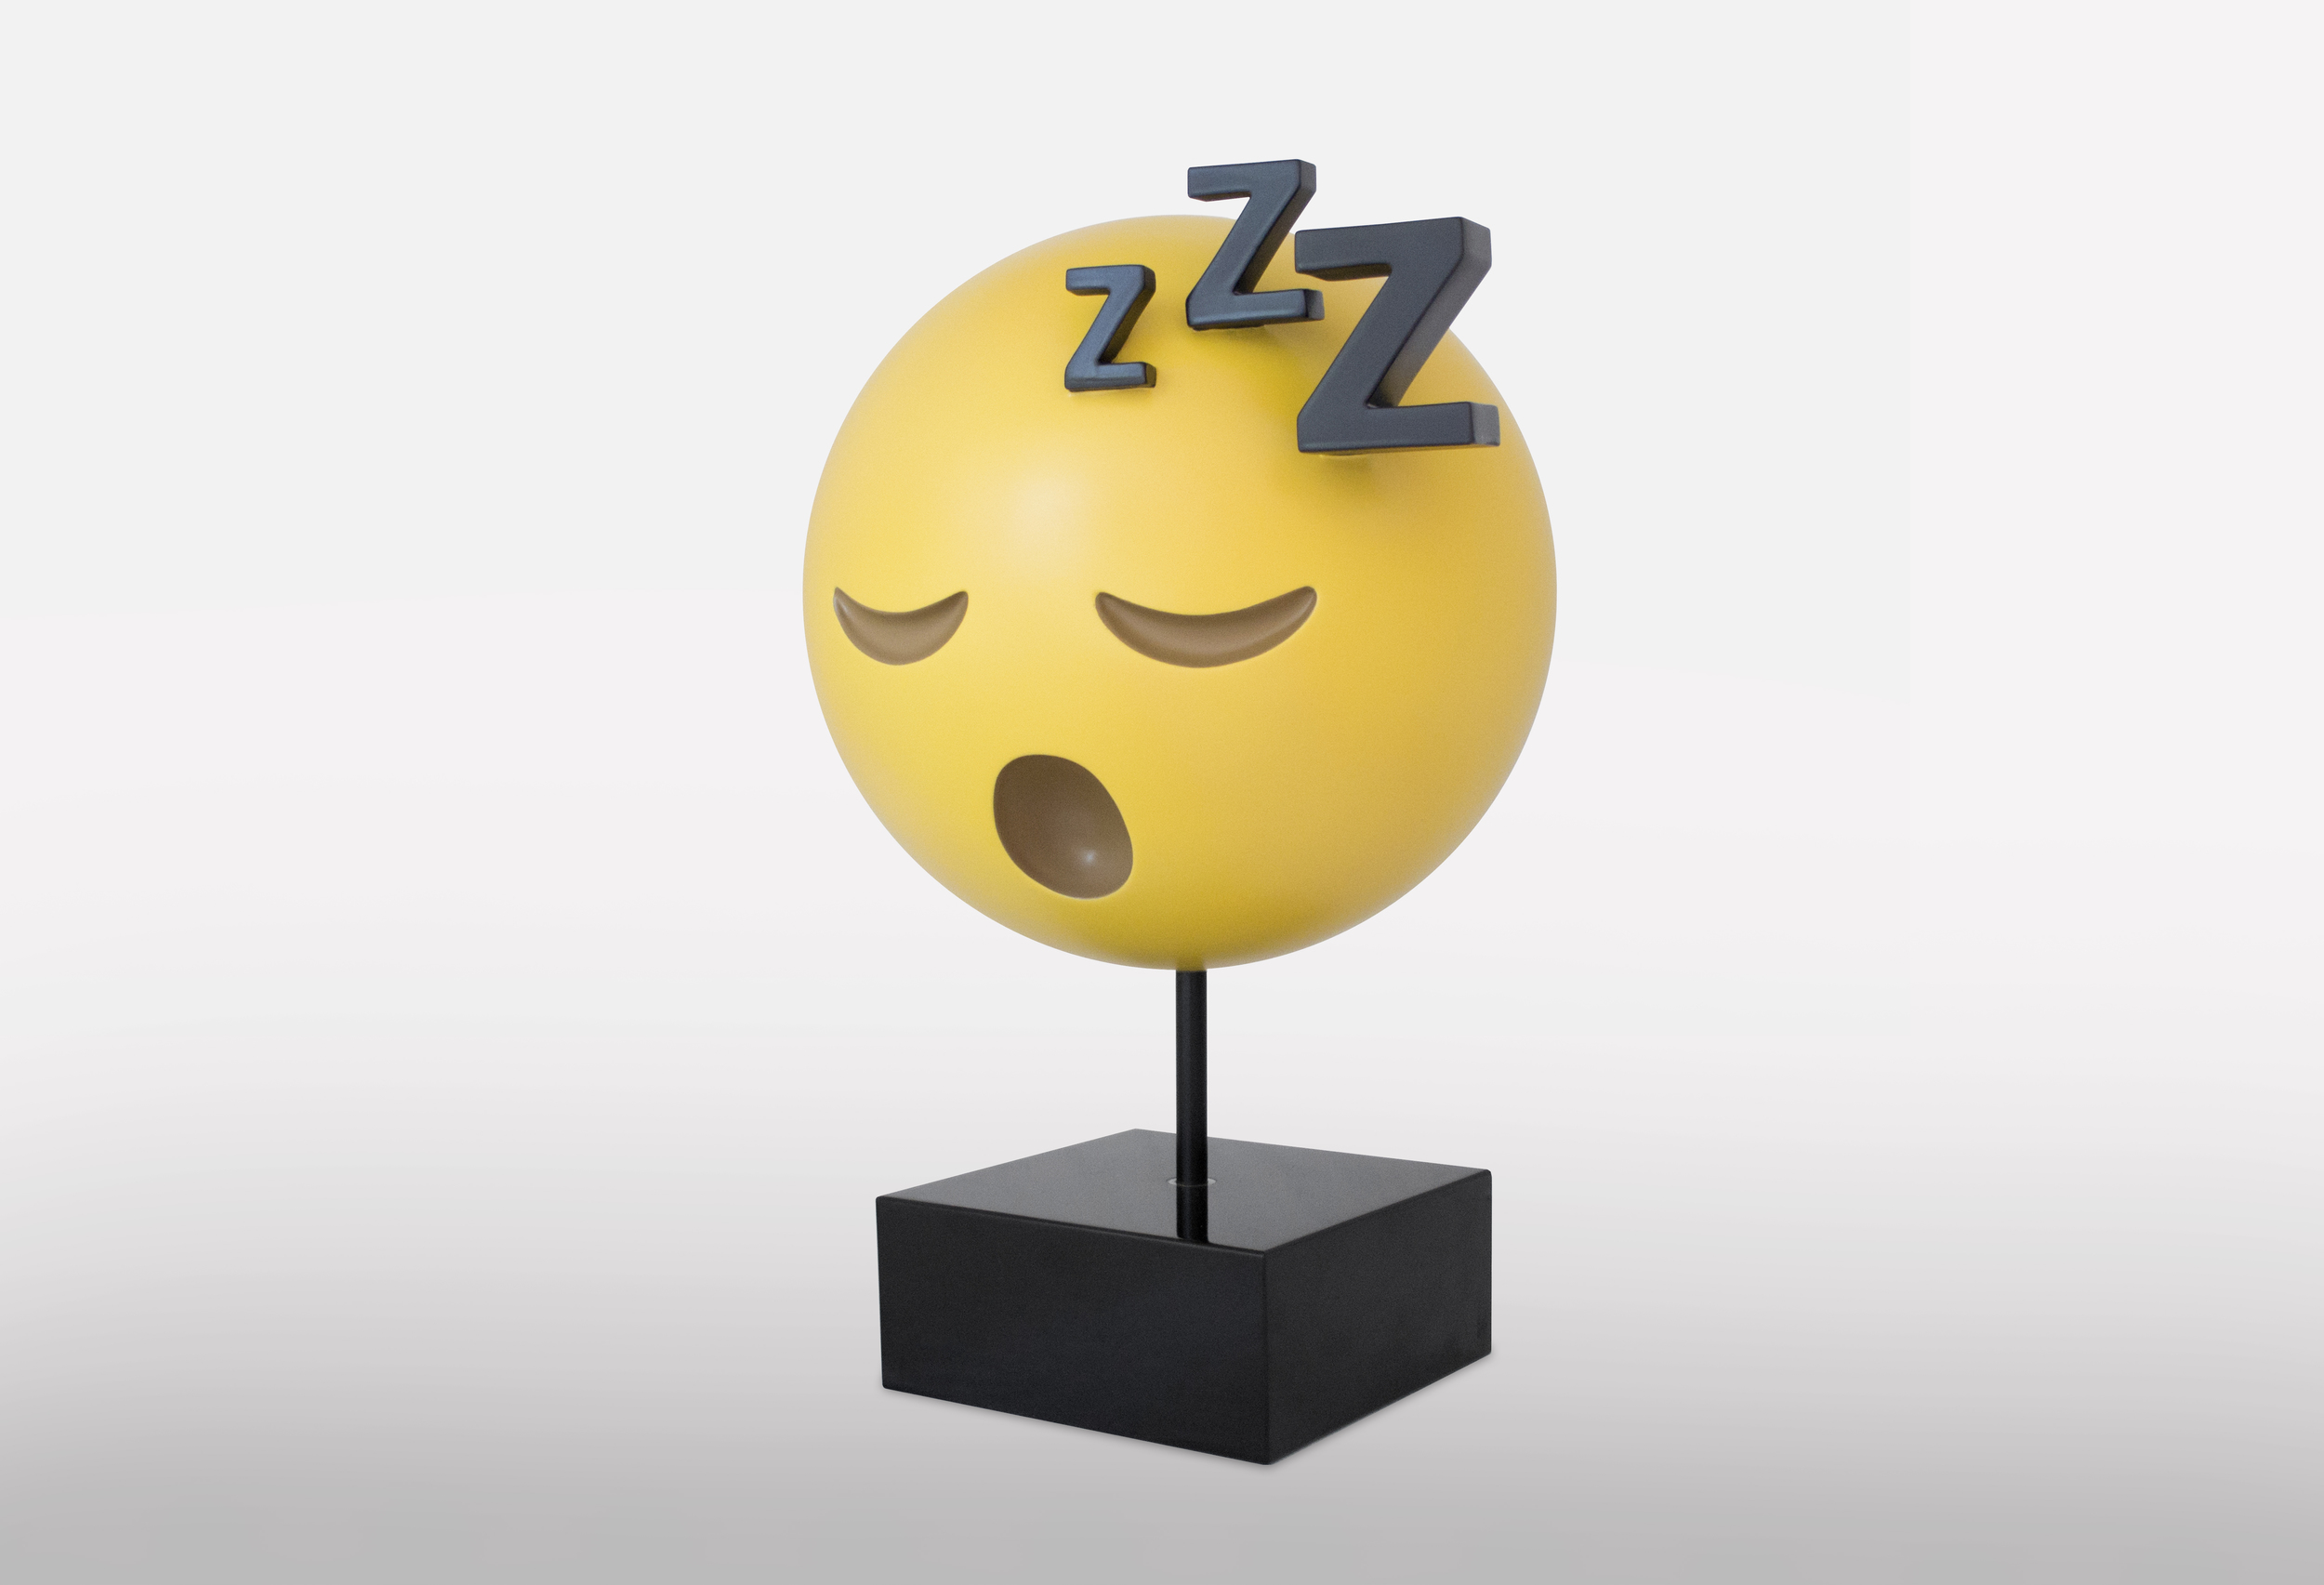 Matthew_LaPenta_Emoji_COLOR_Sleeping_Zs.jpg